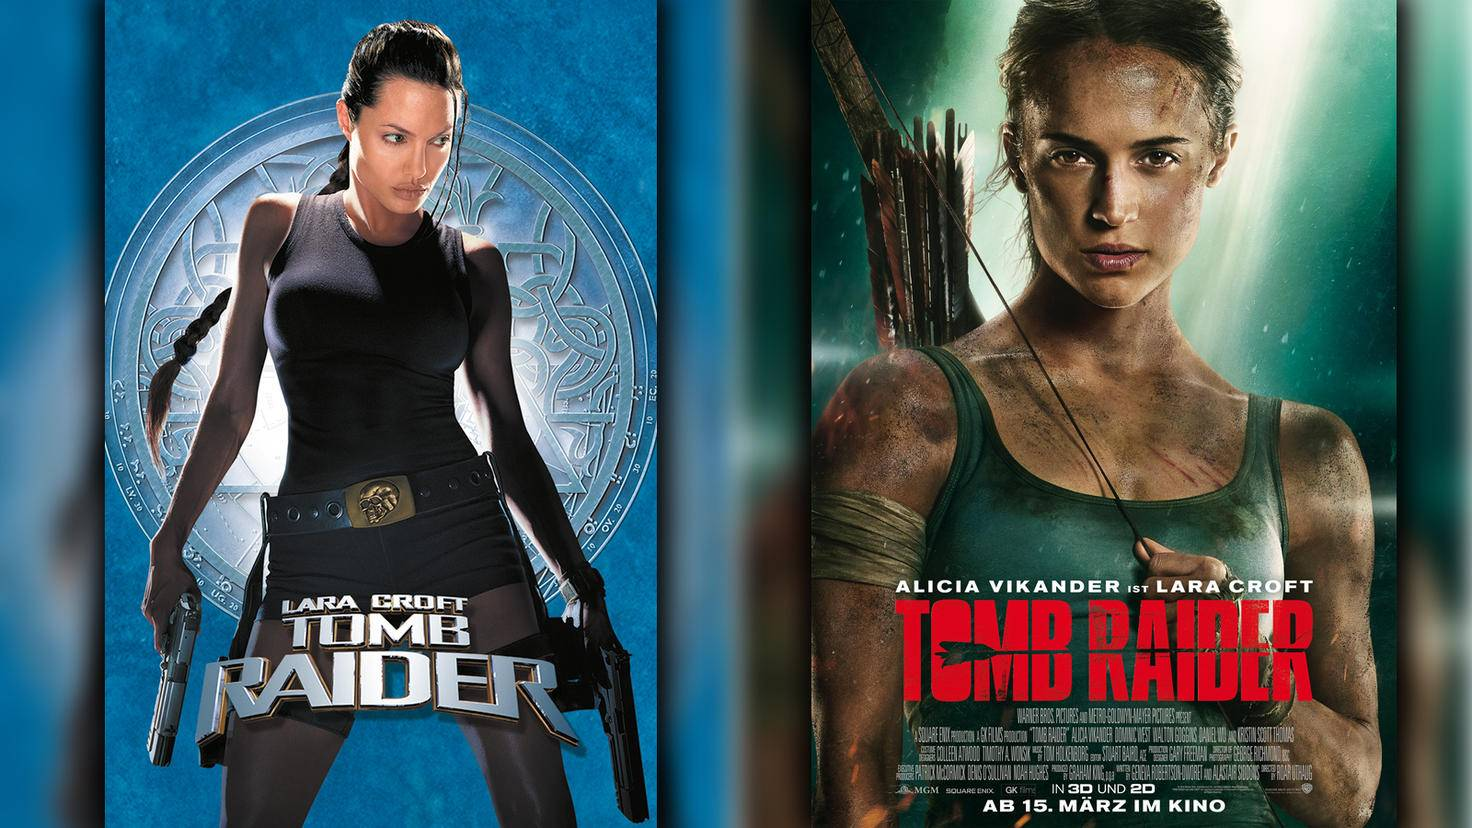 Tomb Raider Lara Croft-Concorde Film-Warner Bros